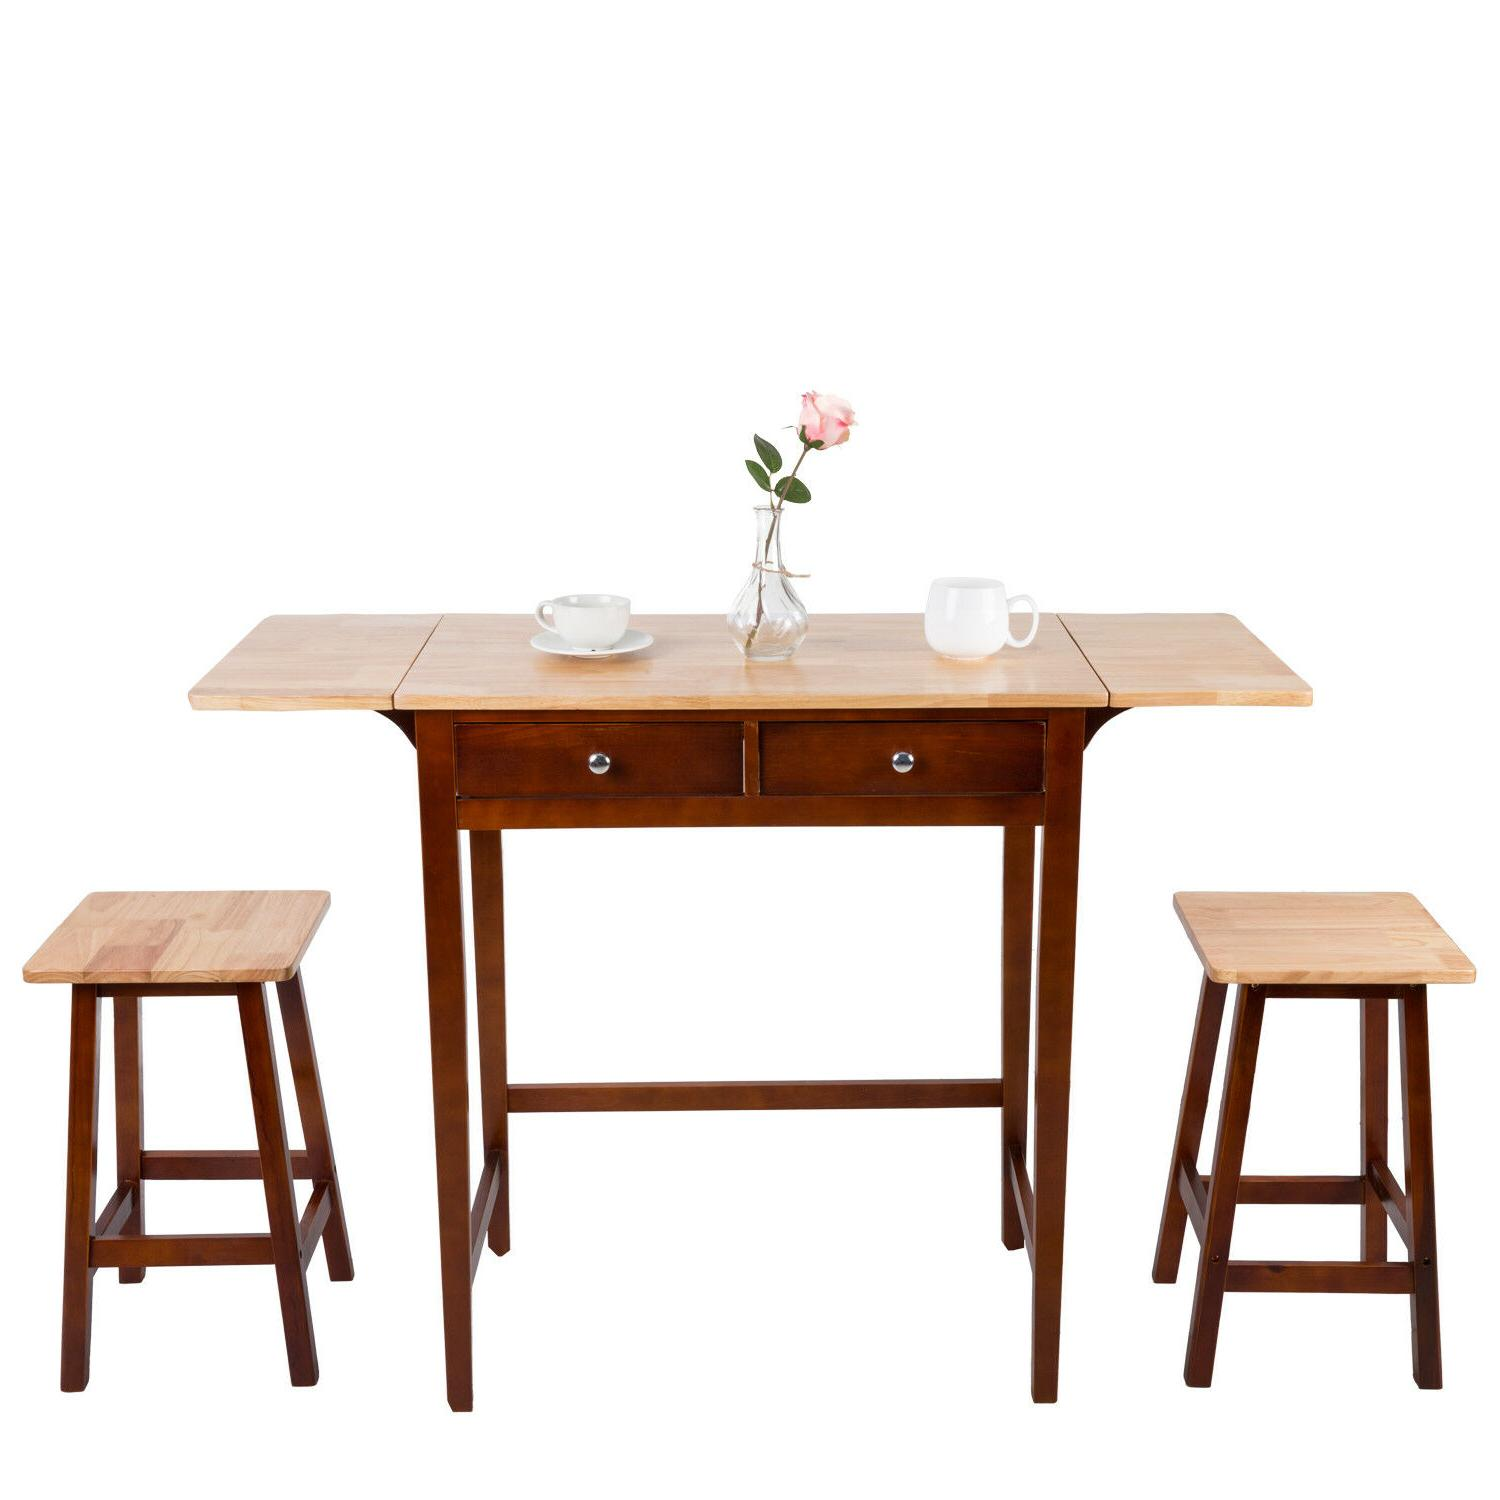 Dining Set 3 PC Wood Breakfast Nook Bistro Double Drop Leaf